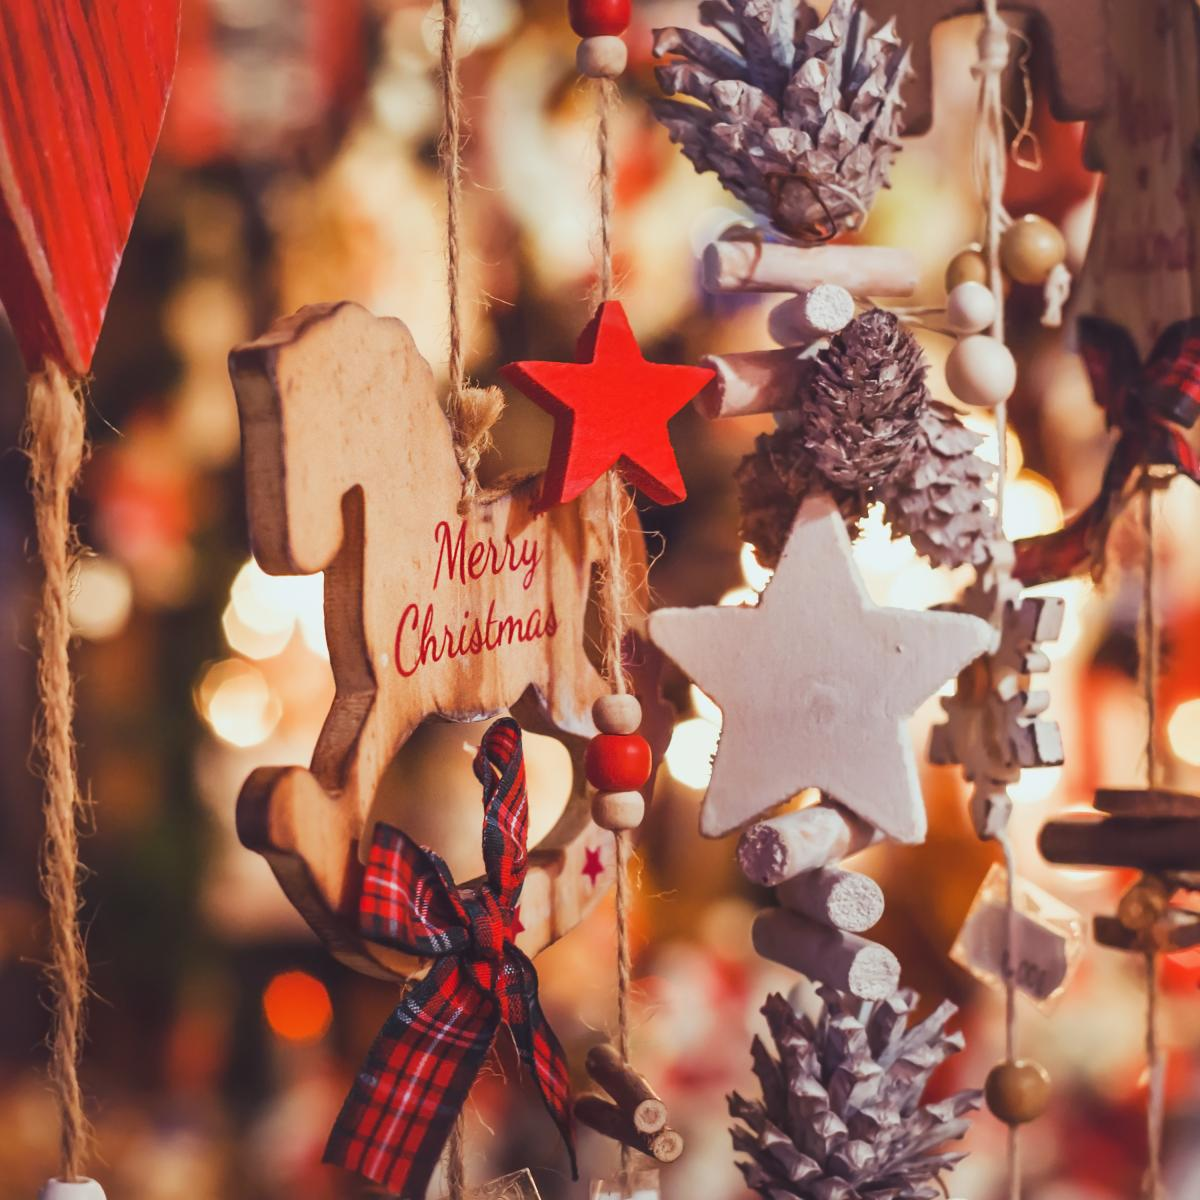 Blenheim Palace Living Crafts for Christmas 2019